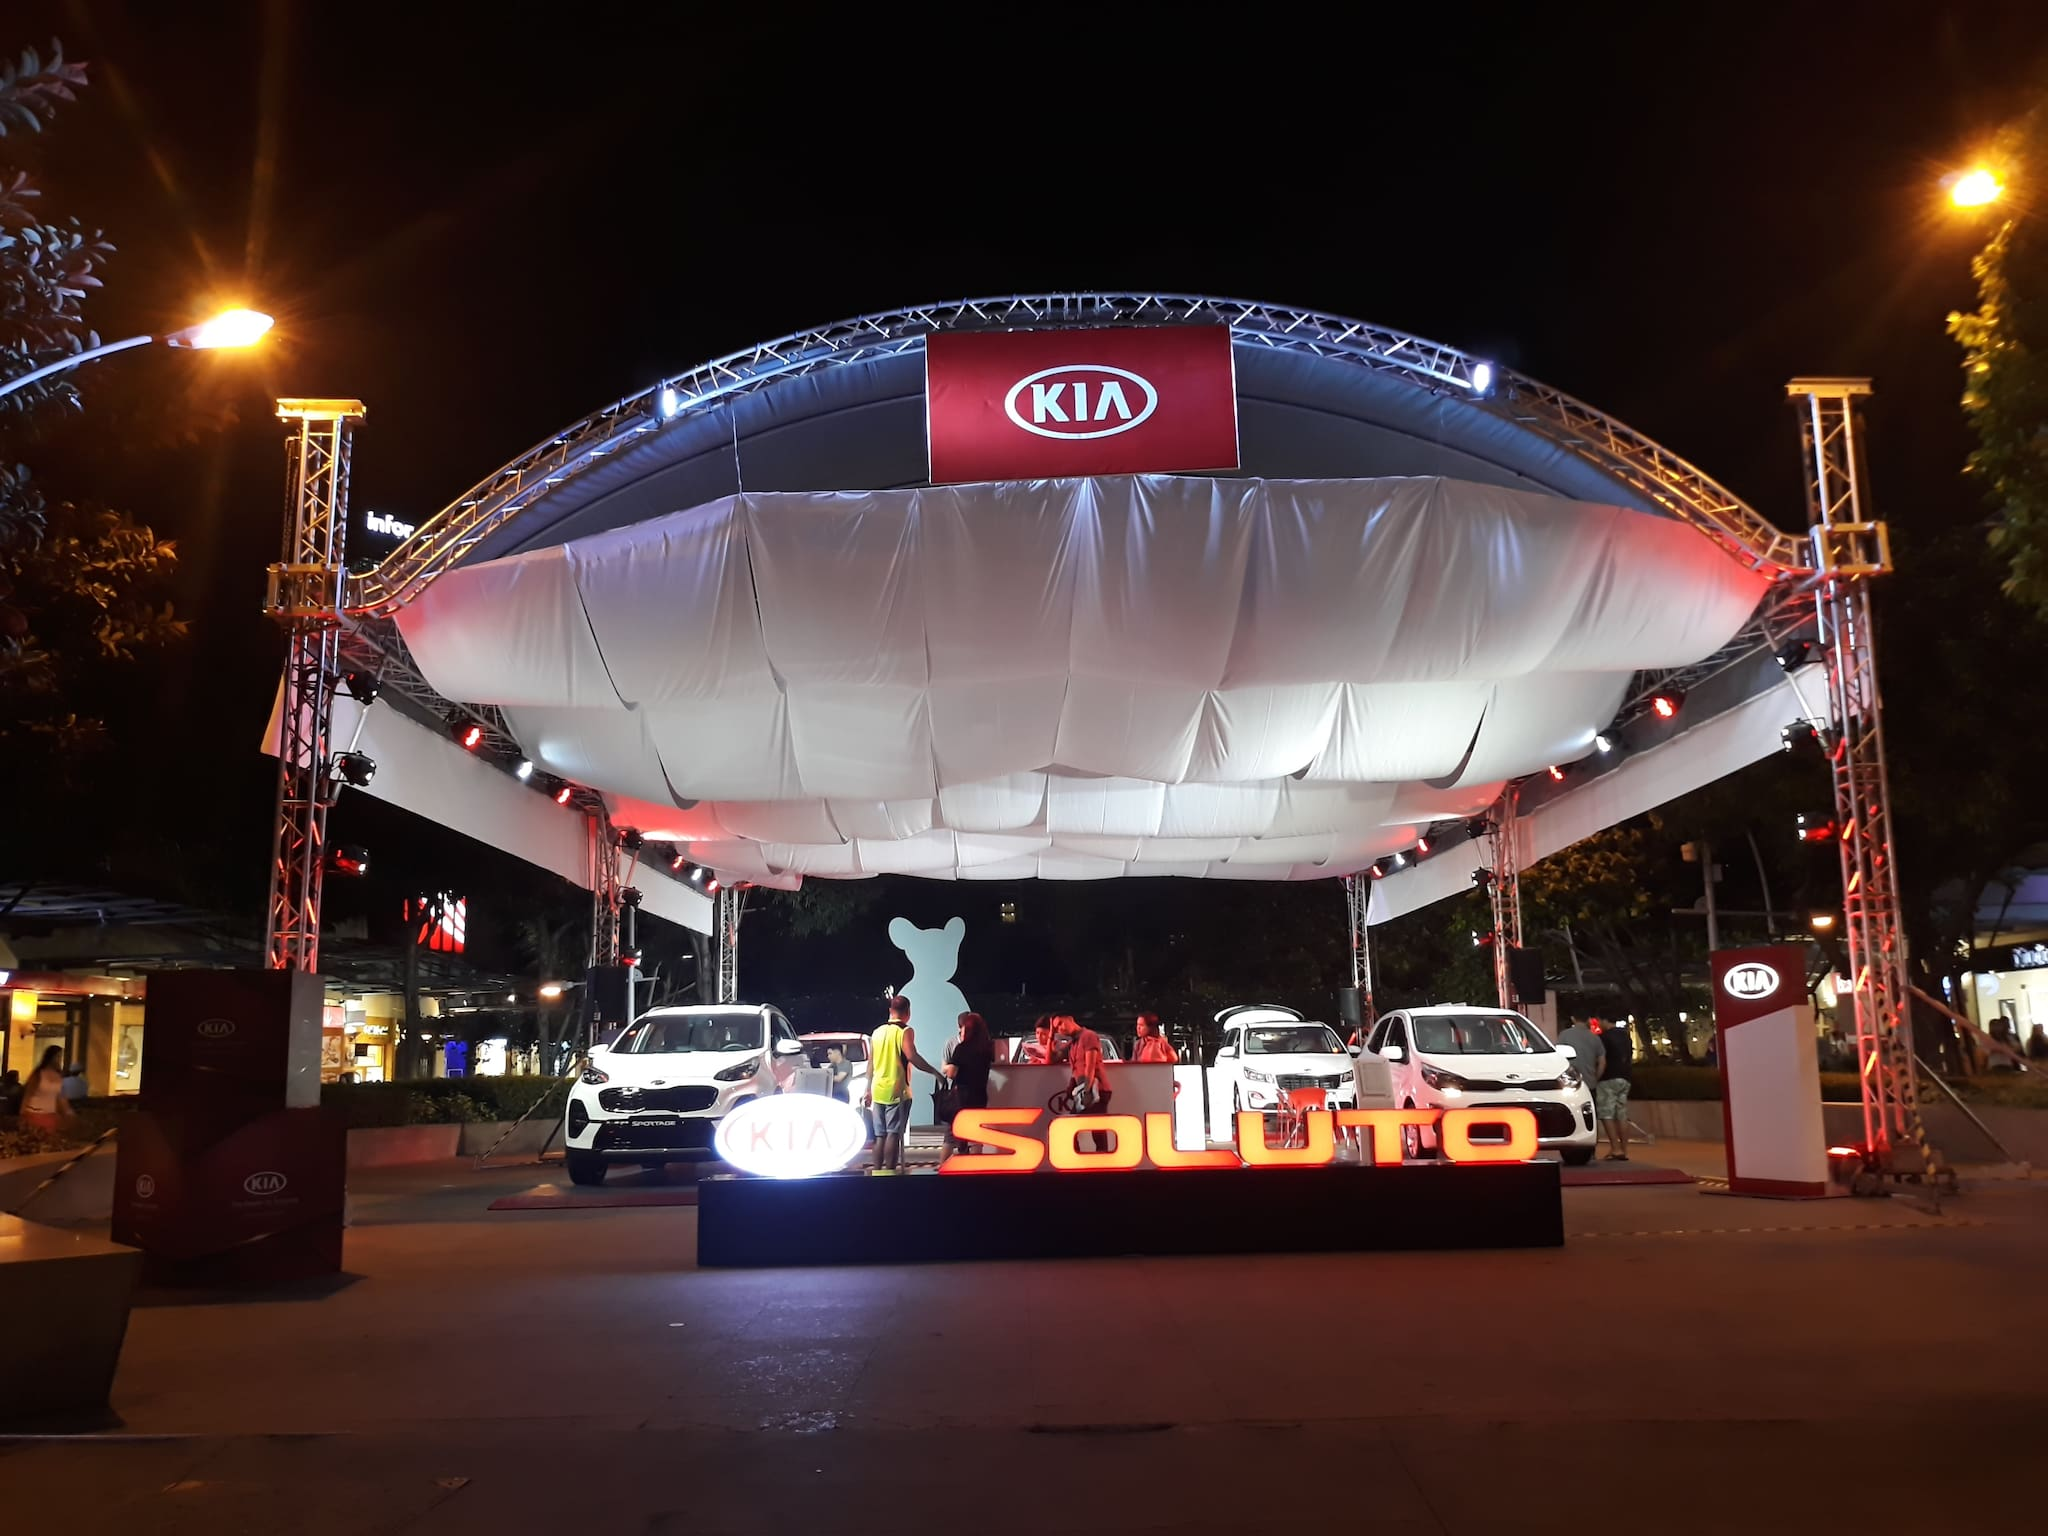 PHOTOS: The Kia Soluto, Other Kia Vehicles at Kia PH's Bonifacio High Street Display